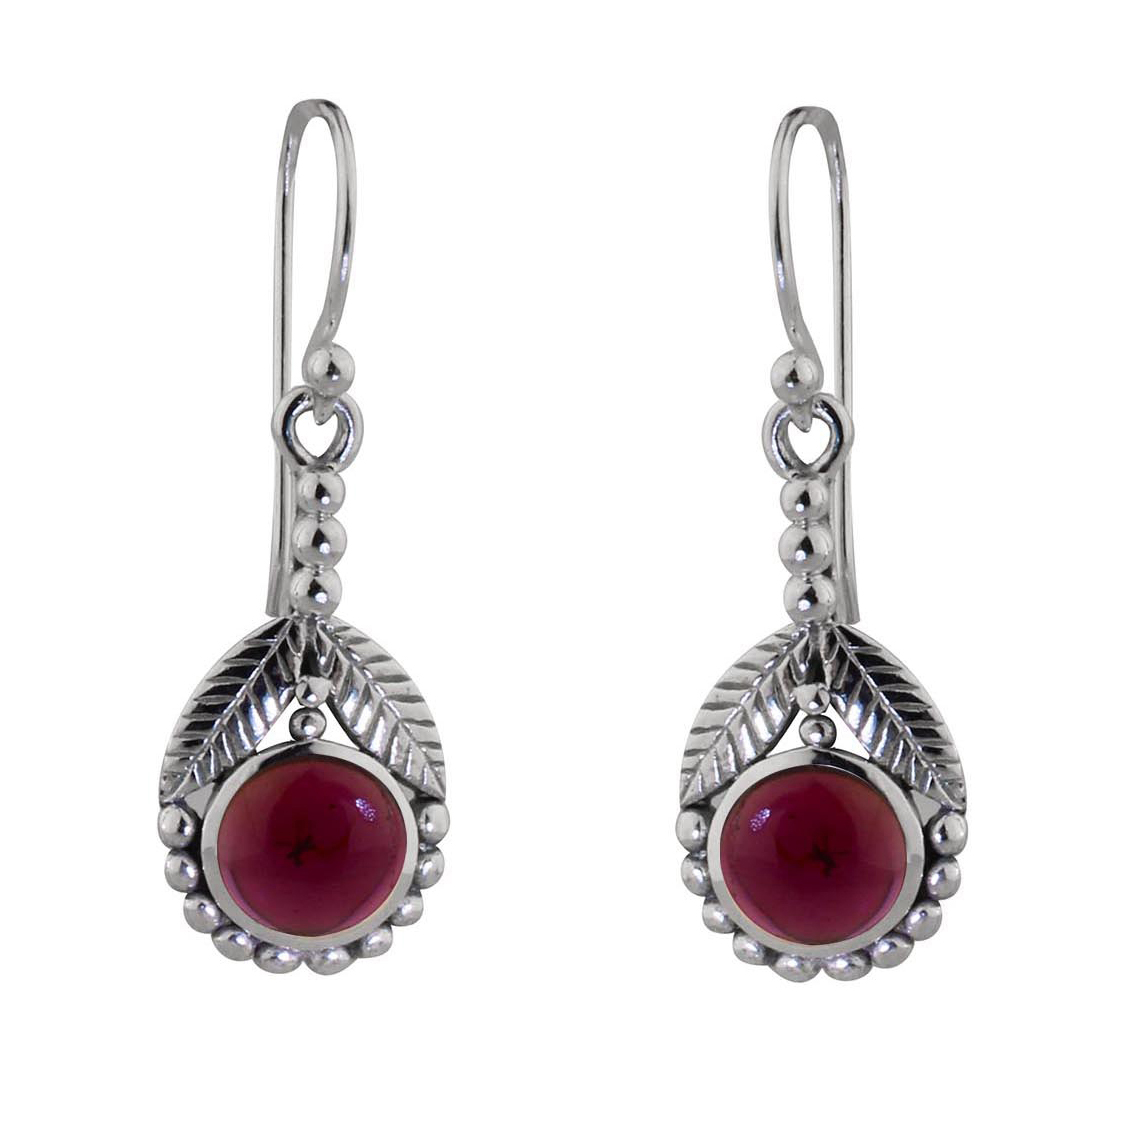 Garnet Daisy Dazzle Earrings